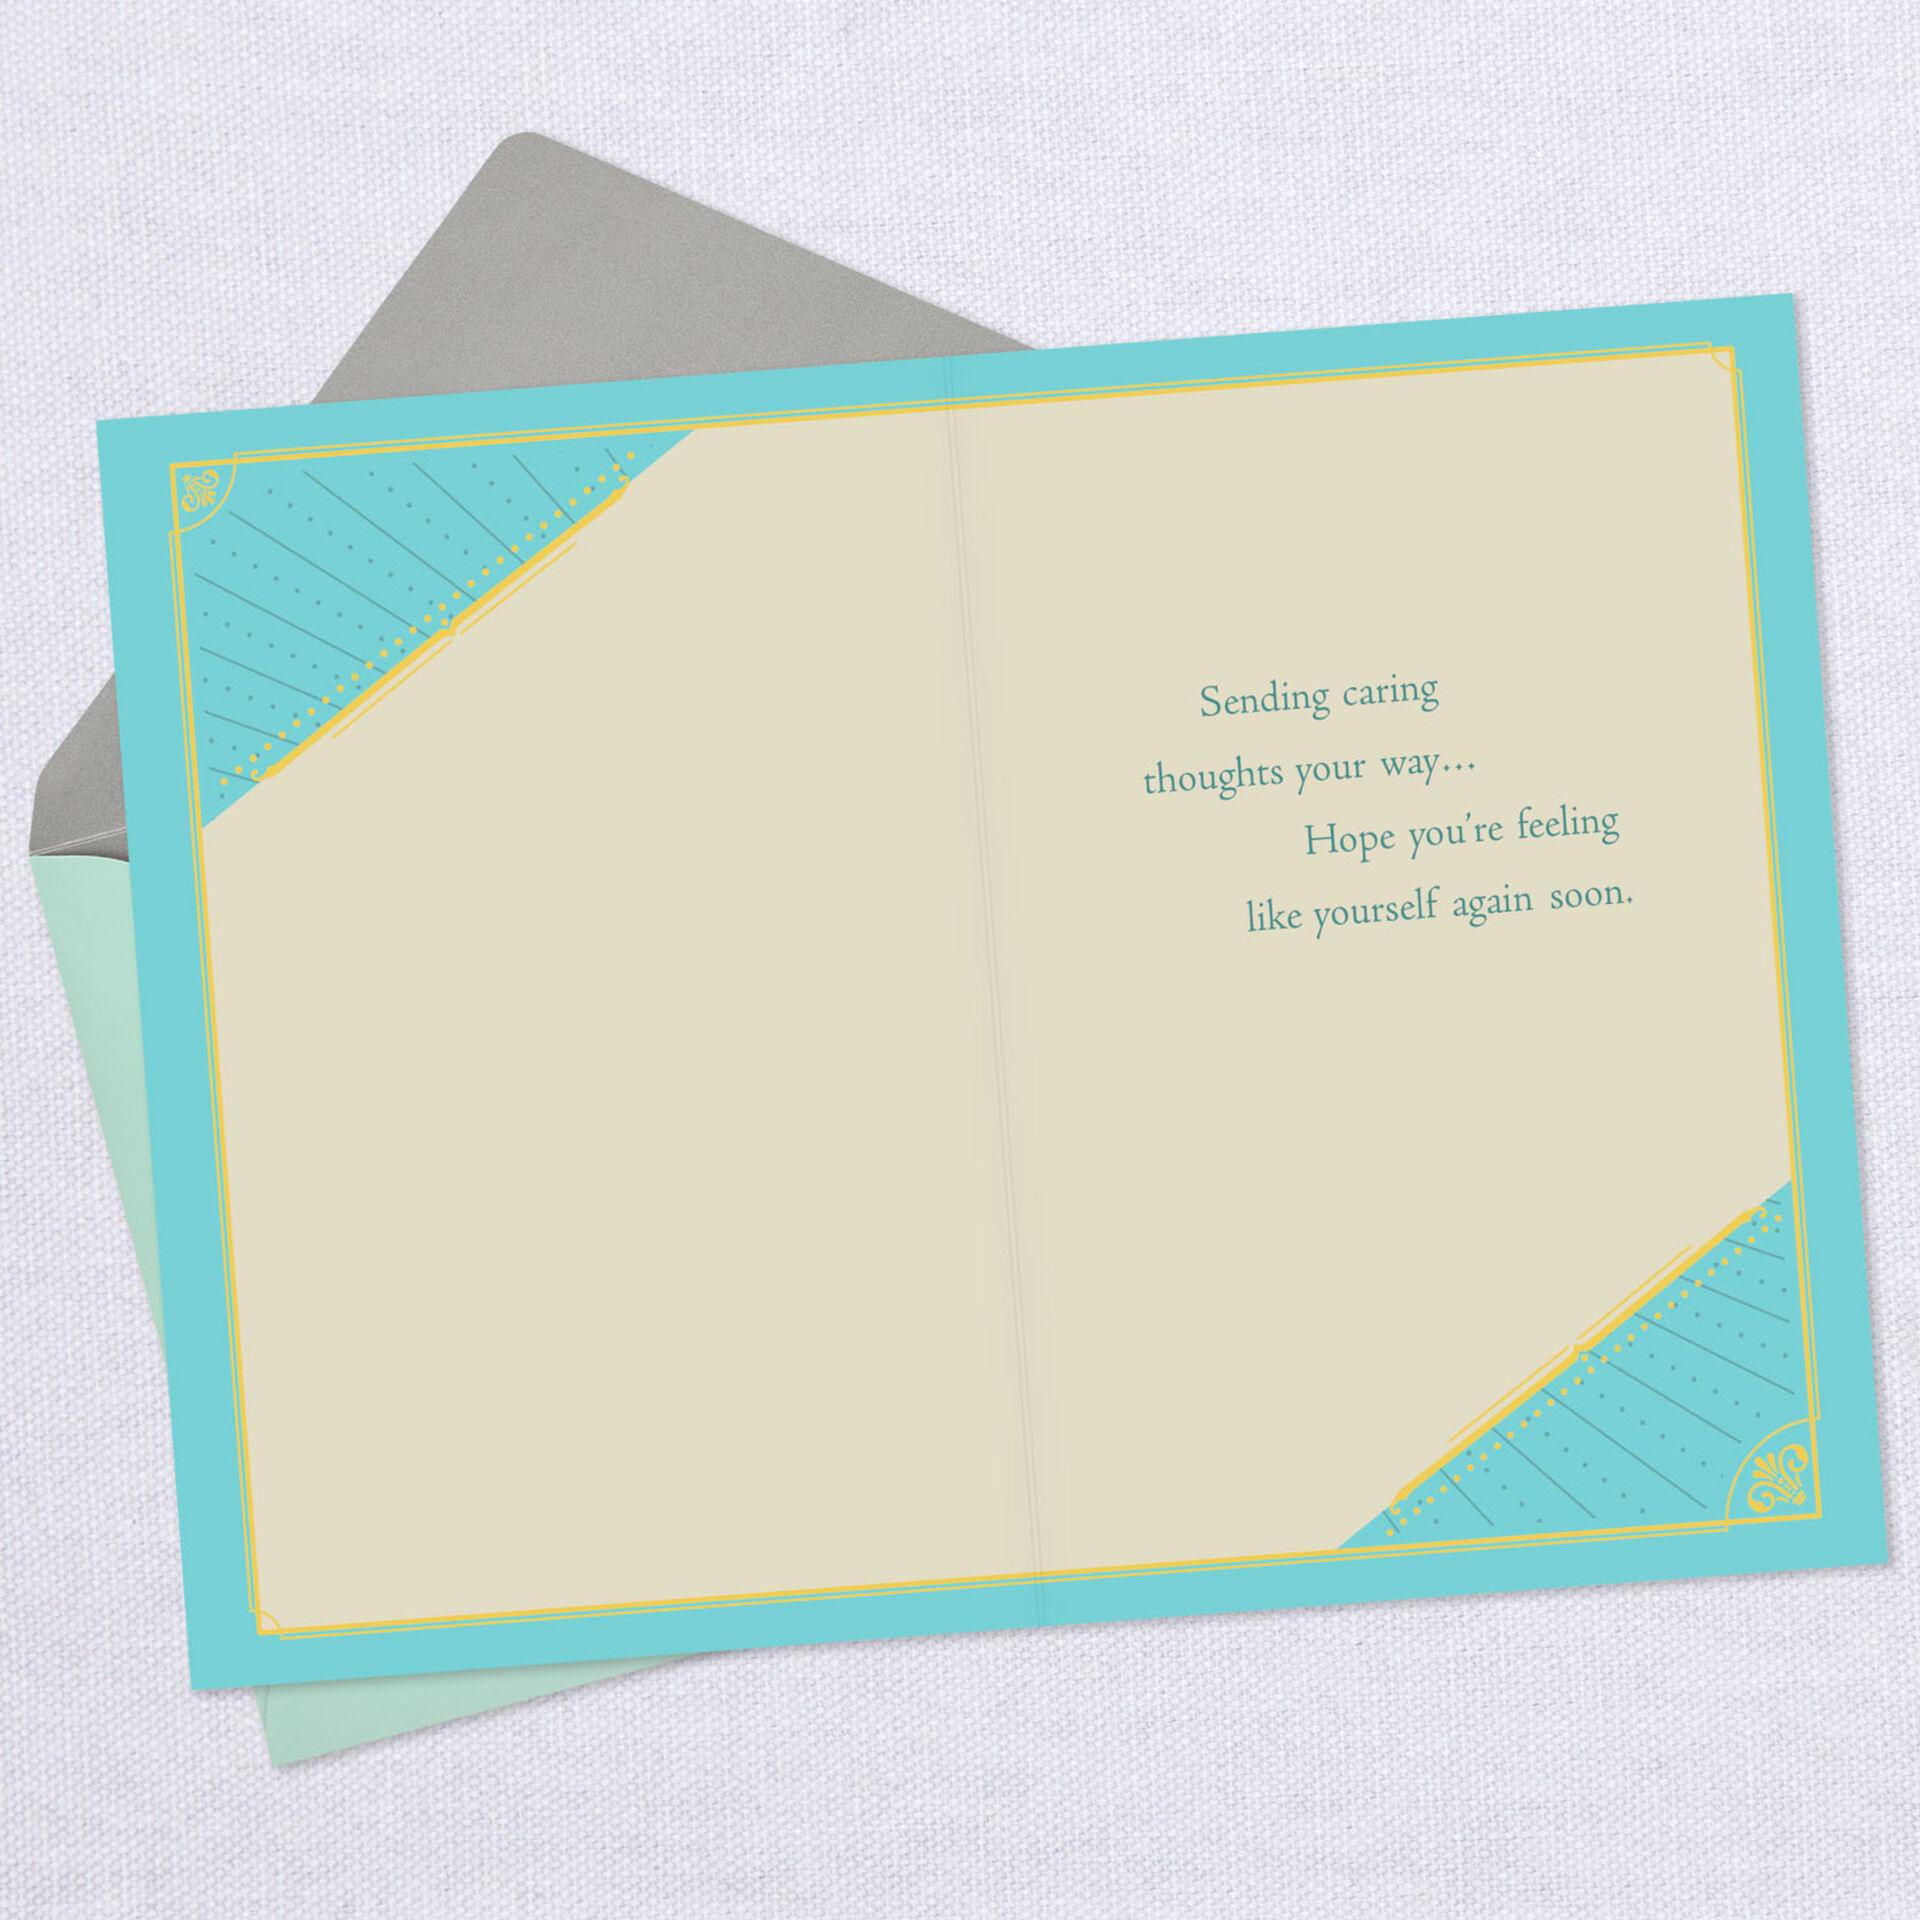 Get Well Wish You Well Thinking of You Sunrise Card Hallmark New with Envelope